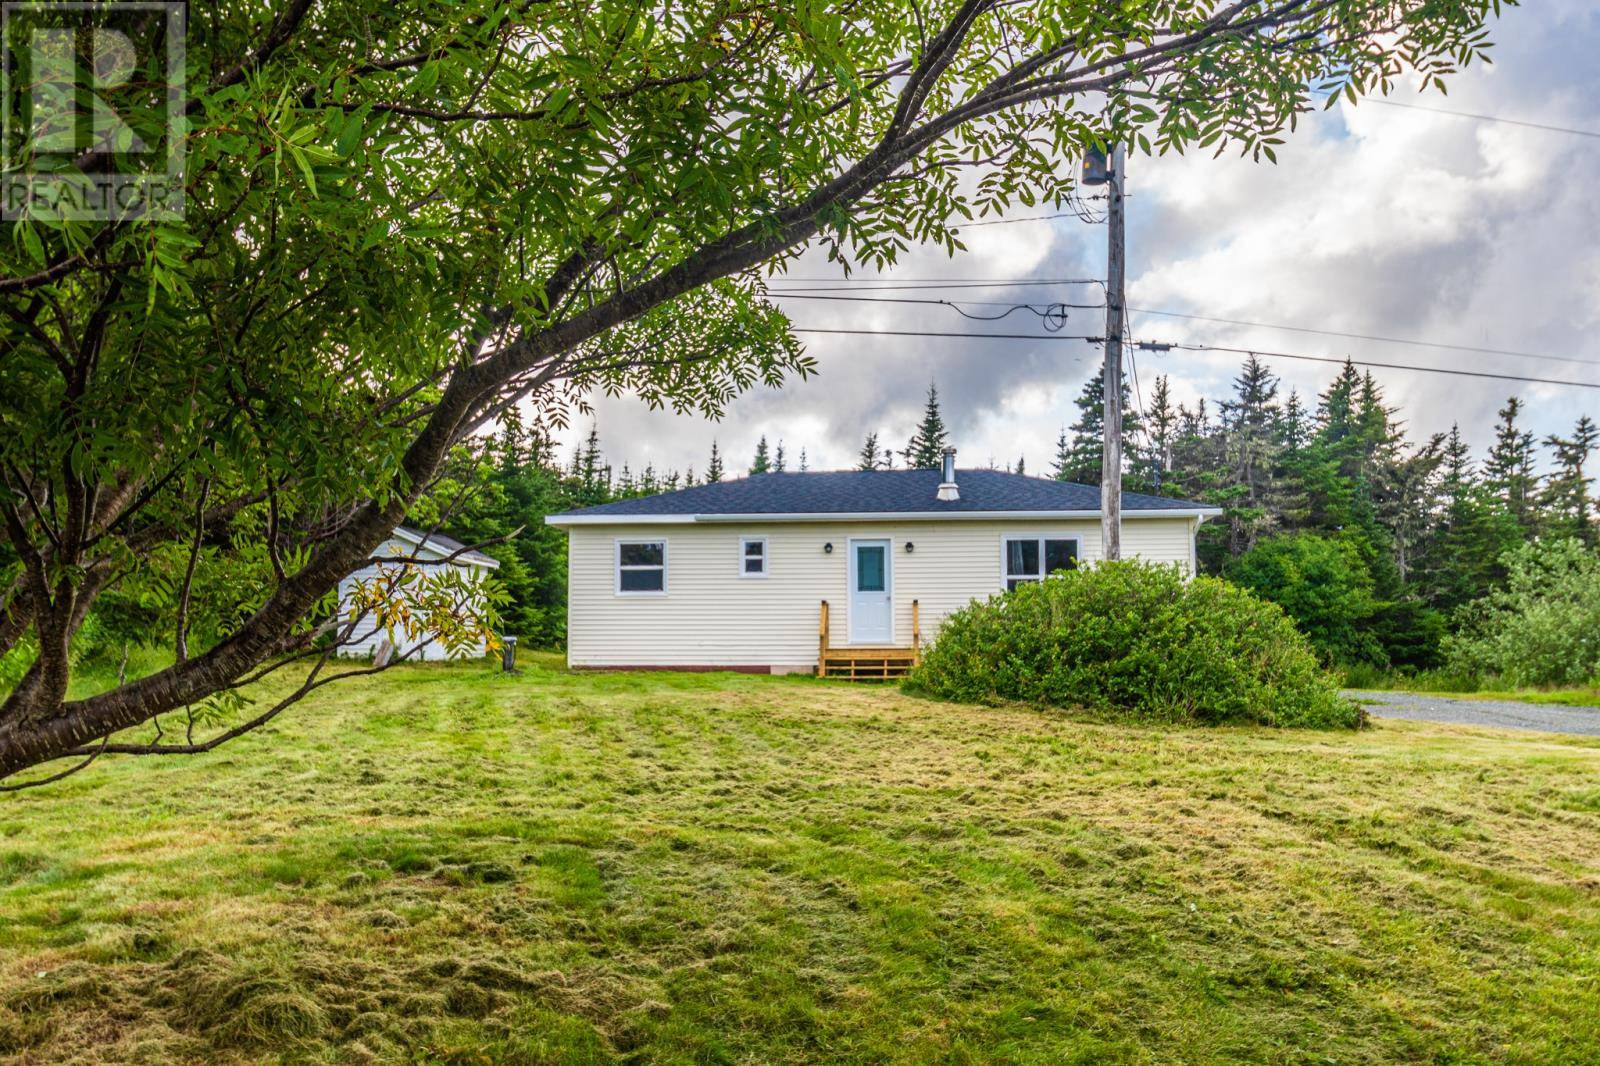 House for sale at 1194 Portugal Cove Rd Portugal Cove - St. Phillip's Newfoundland - MLS: 1207740